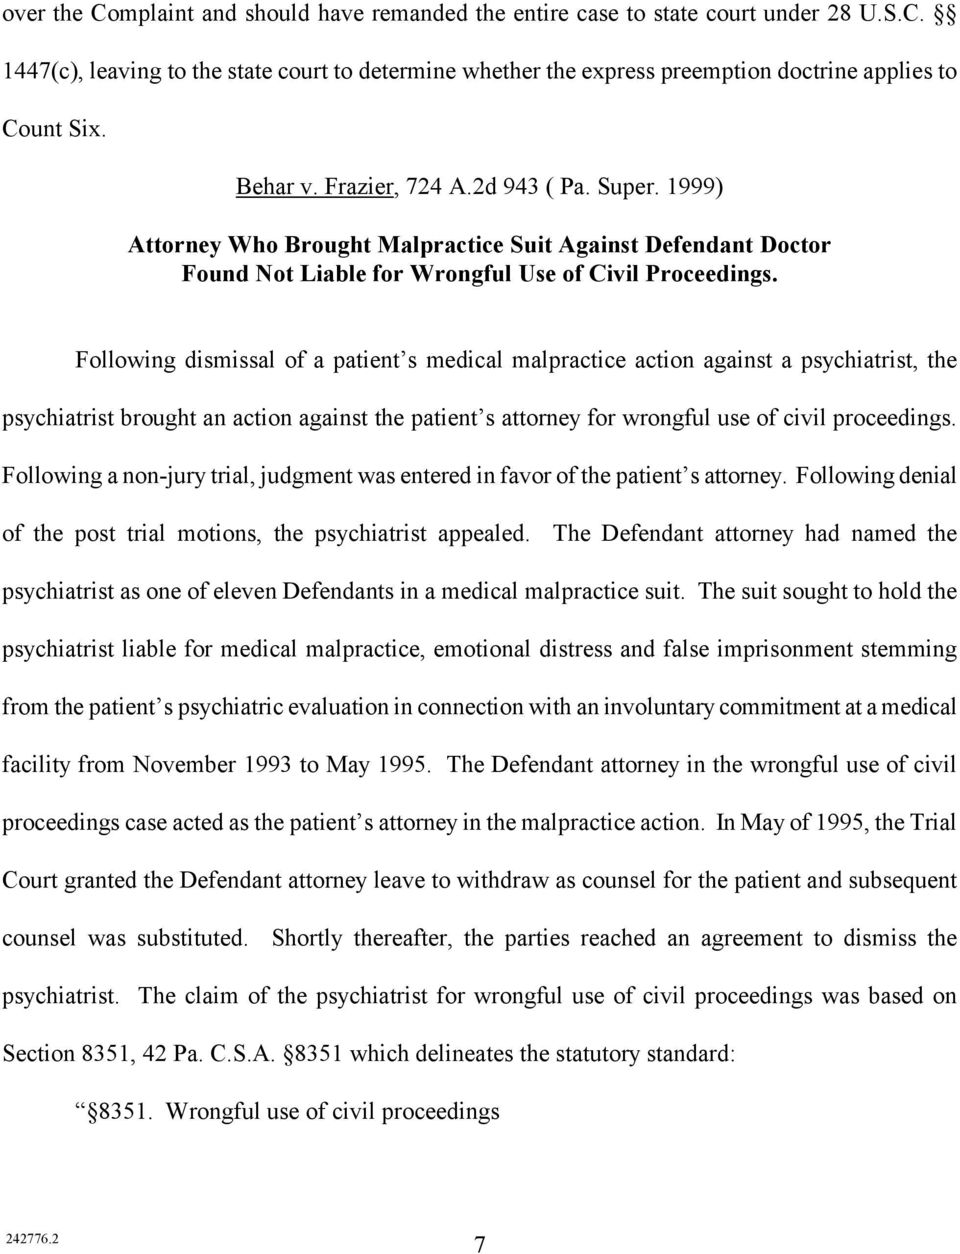 Following dismissal of a patient s medical malpractice action against a psychiatrist, the psychiatrist brought an action against the patient s attorney for wrongful use of civil proceedings.